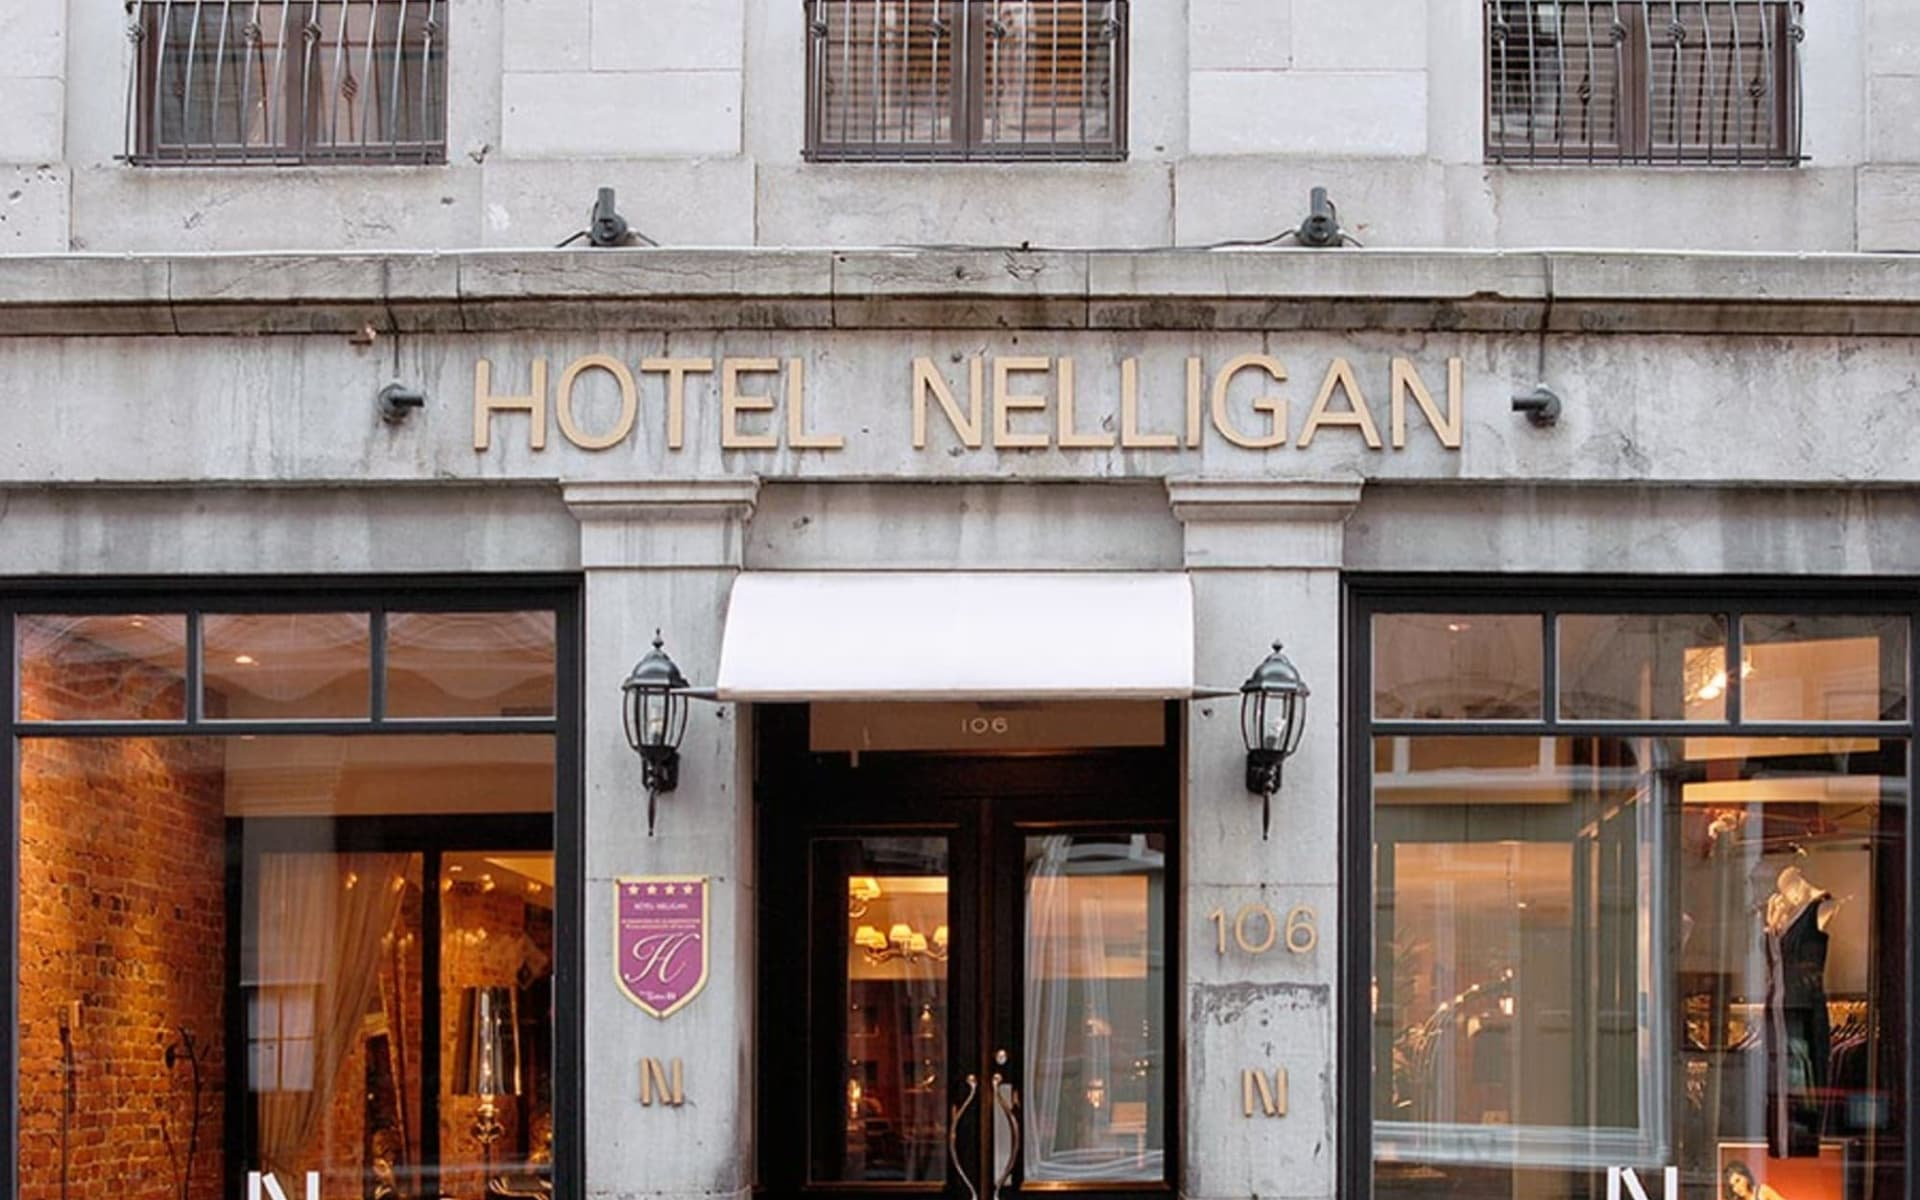 Hotel Nelligan in Montréal:  Le Nelligan_MainEntrance